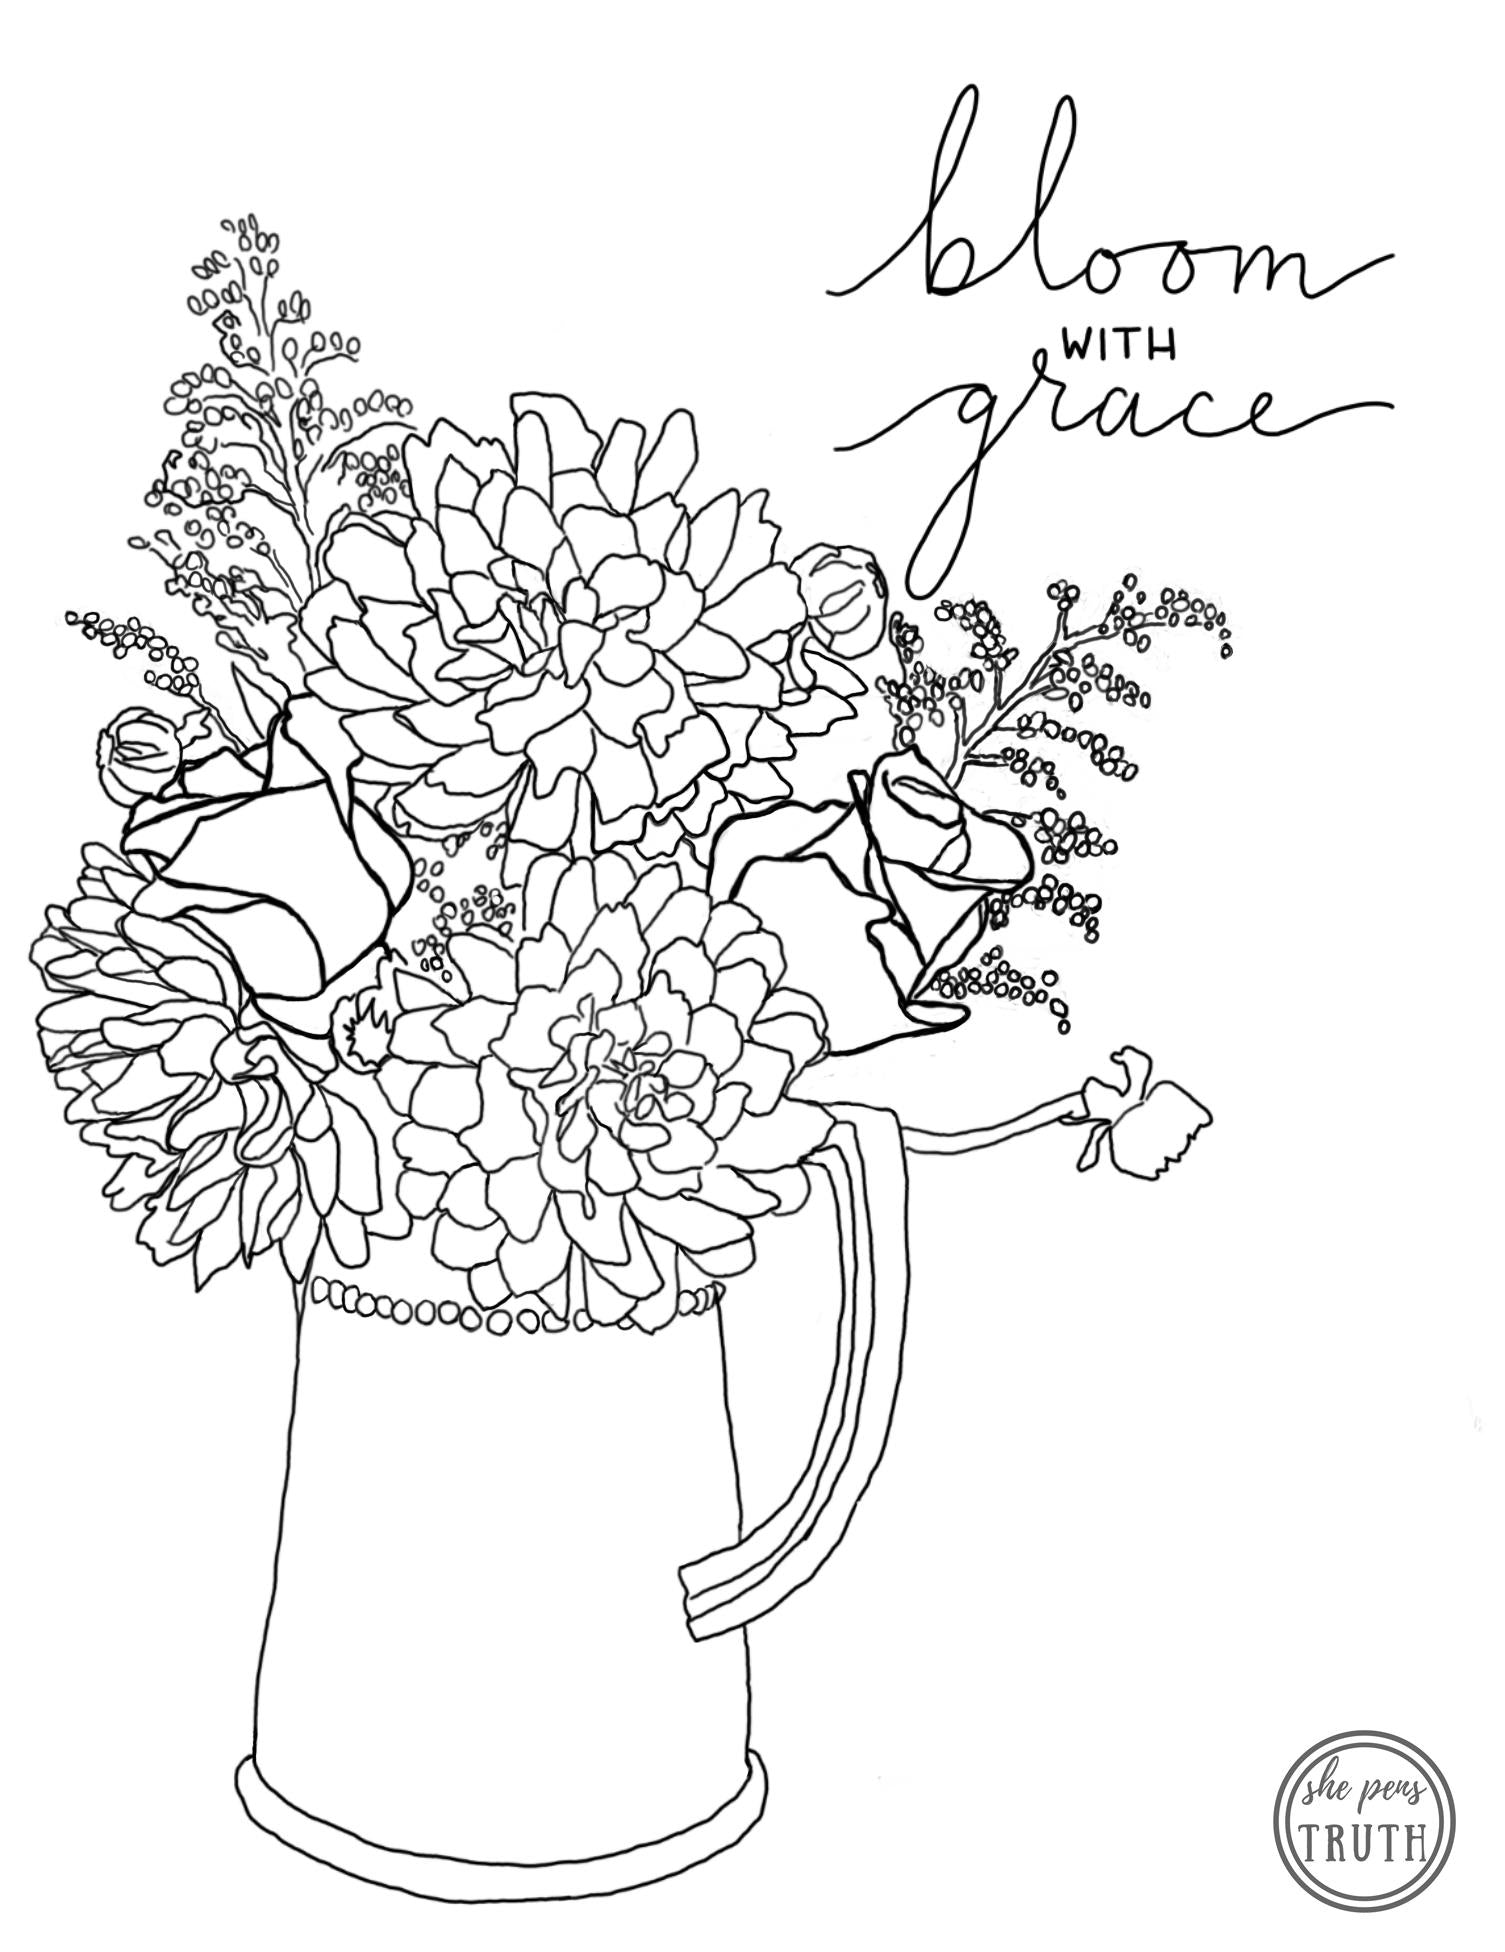 Bloom with Grace, free She Pens Truth coloring page